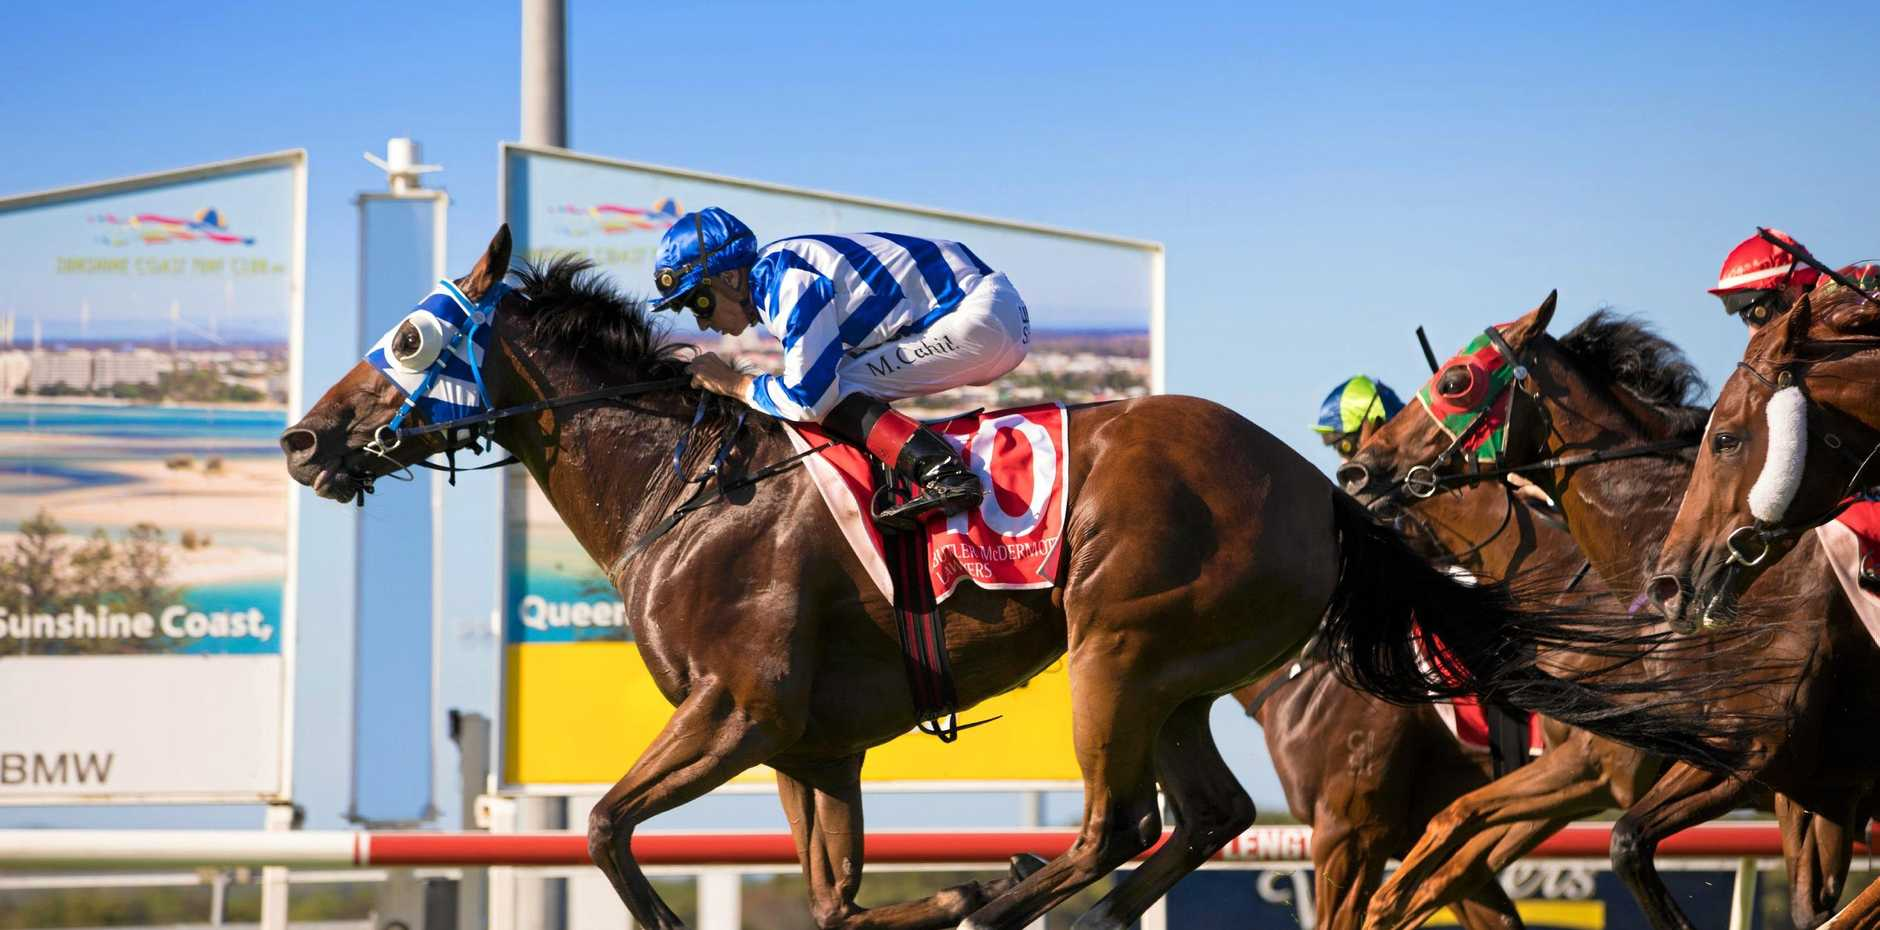 NEW PACKAGES: Noosa Destination Management Company has partnered with the Sunshine Coast Turf Club to create race day packages for Noosa residents.